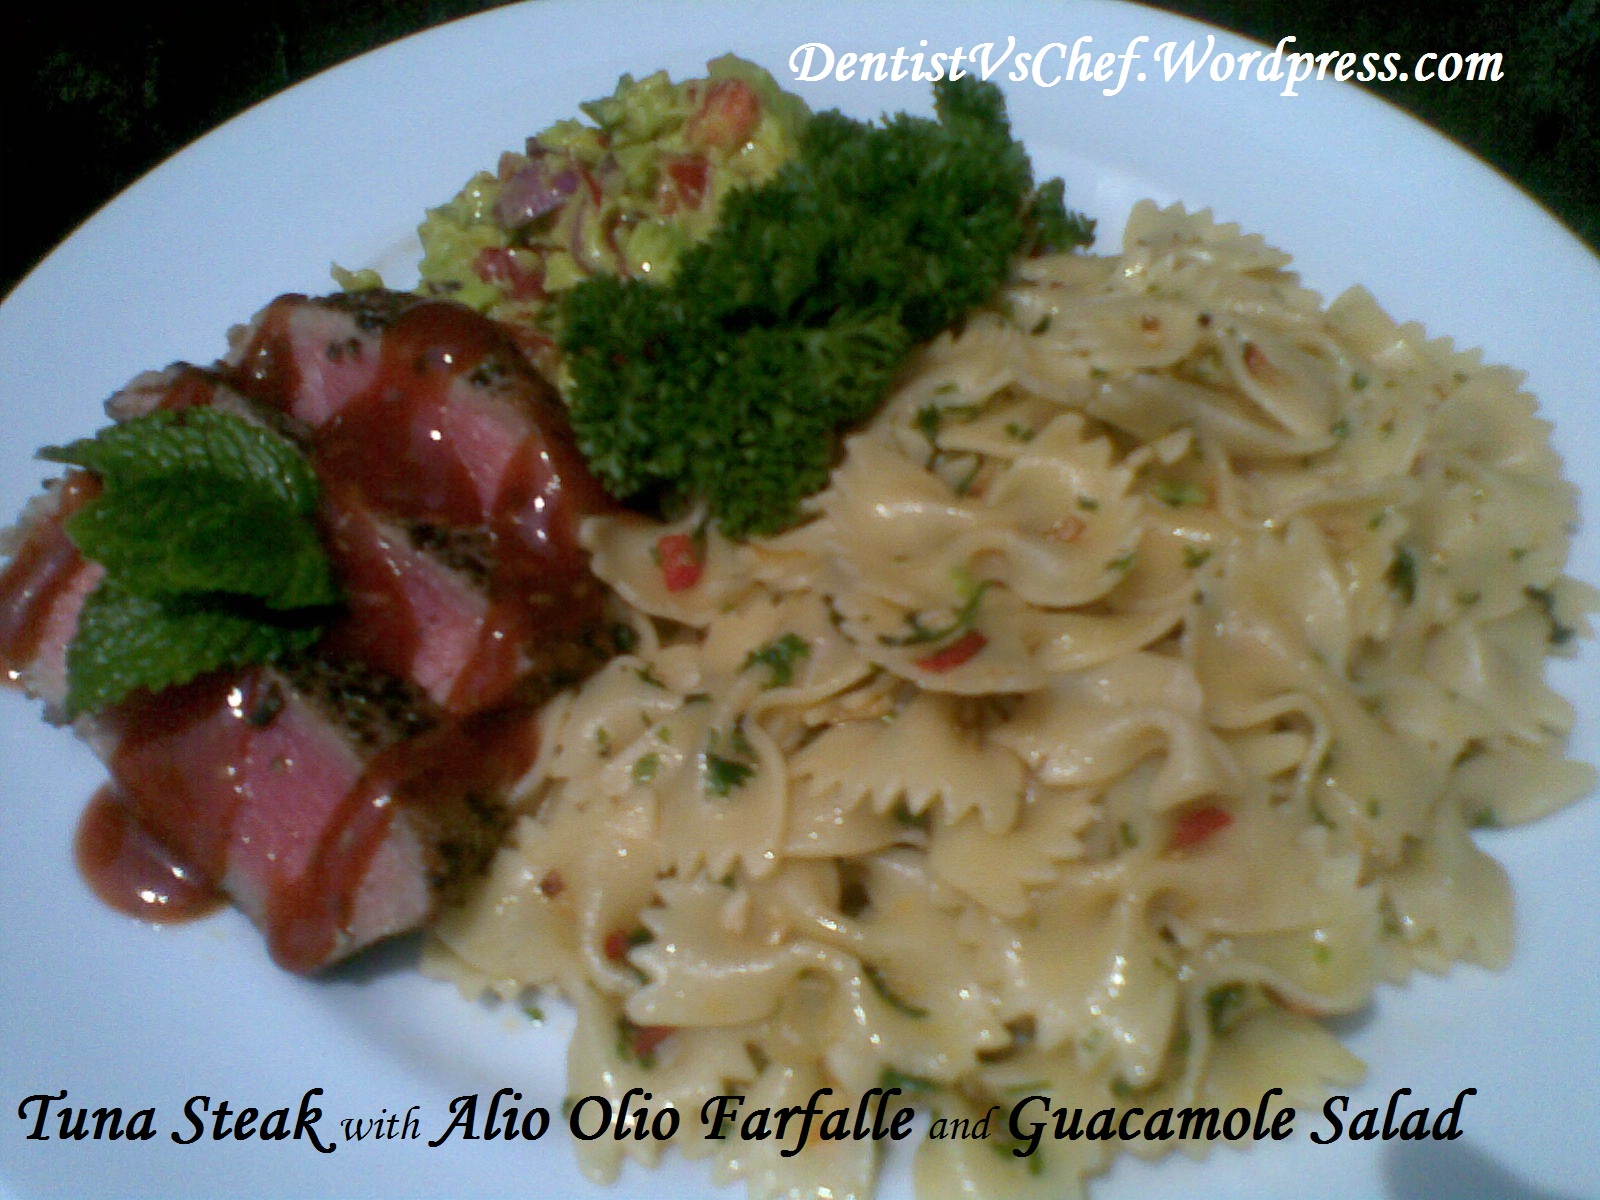 made the steak with sashimi grade tuna that marinade with